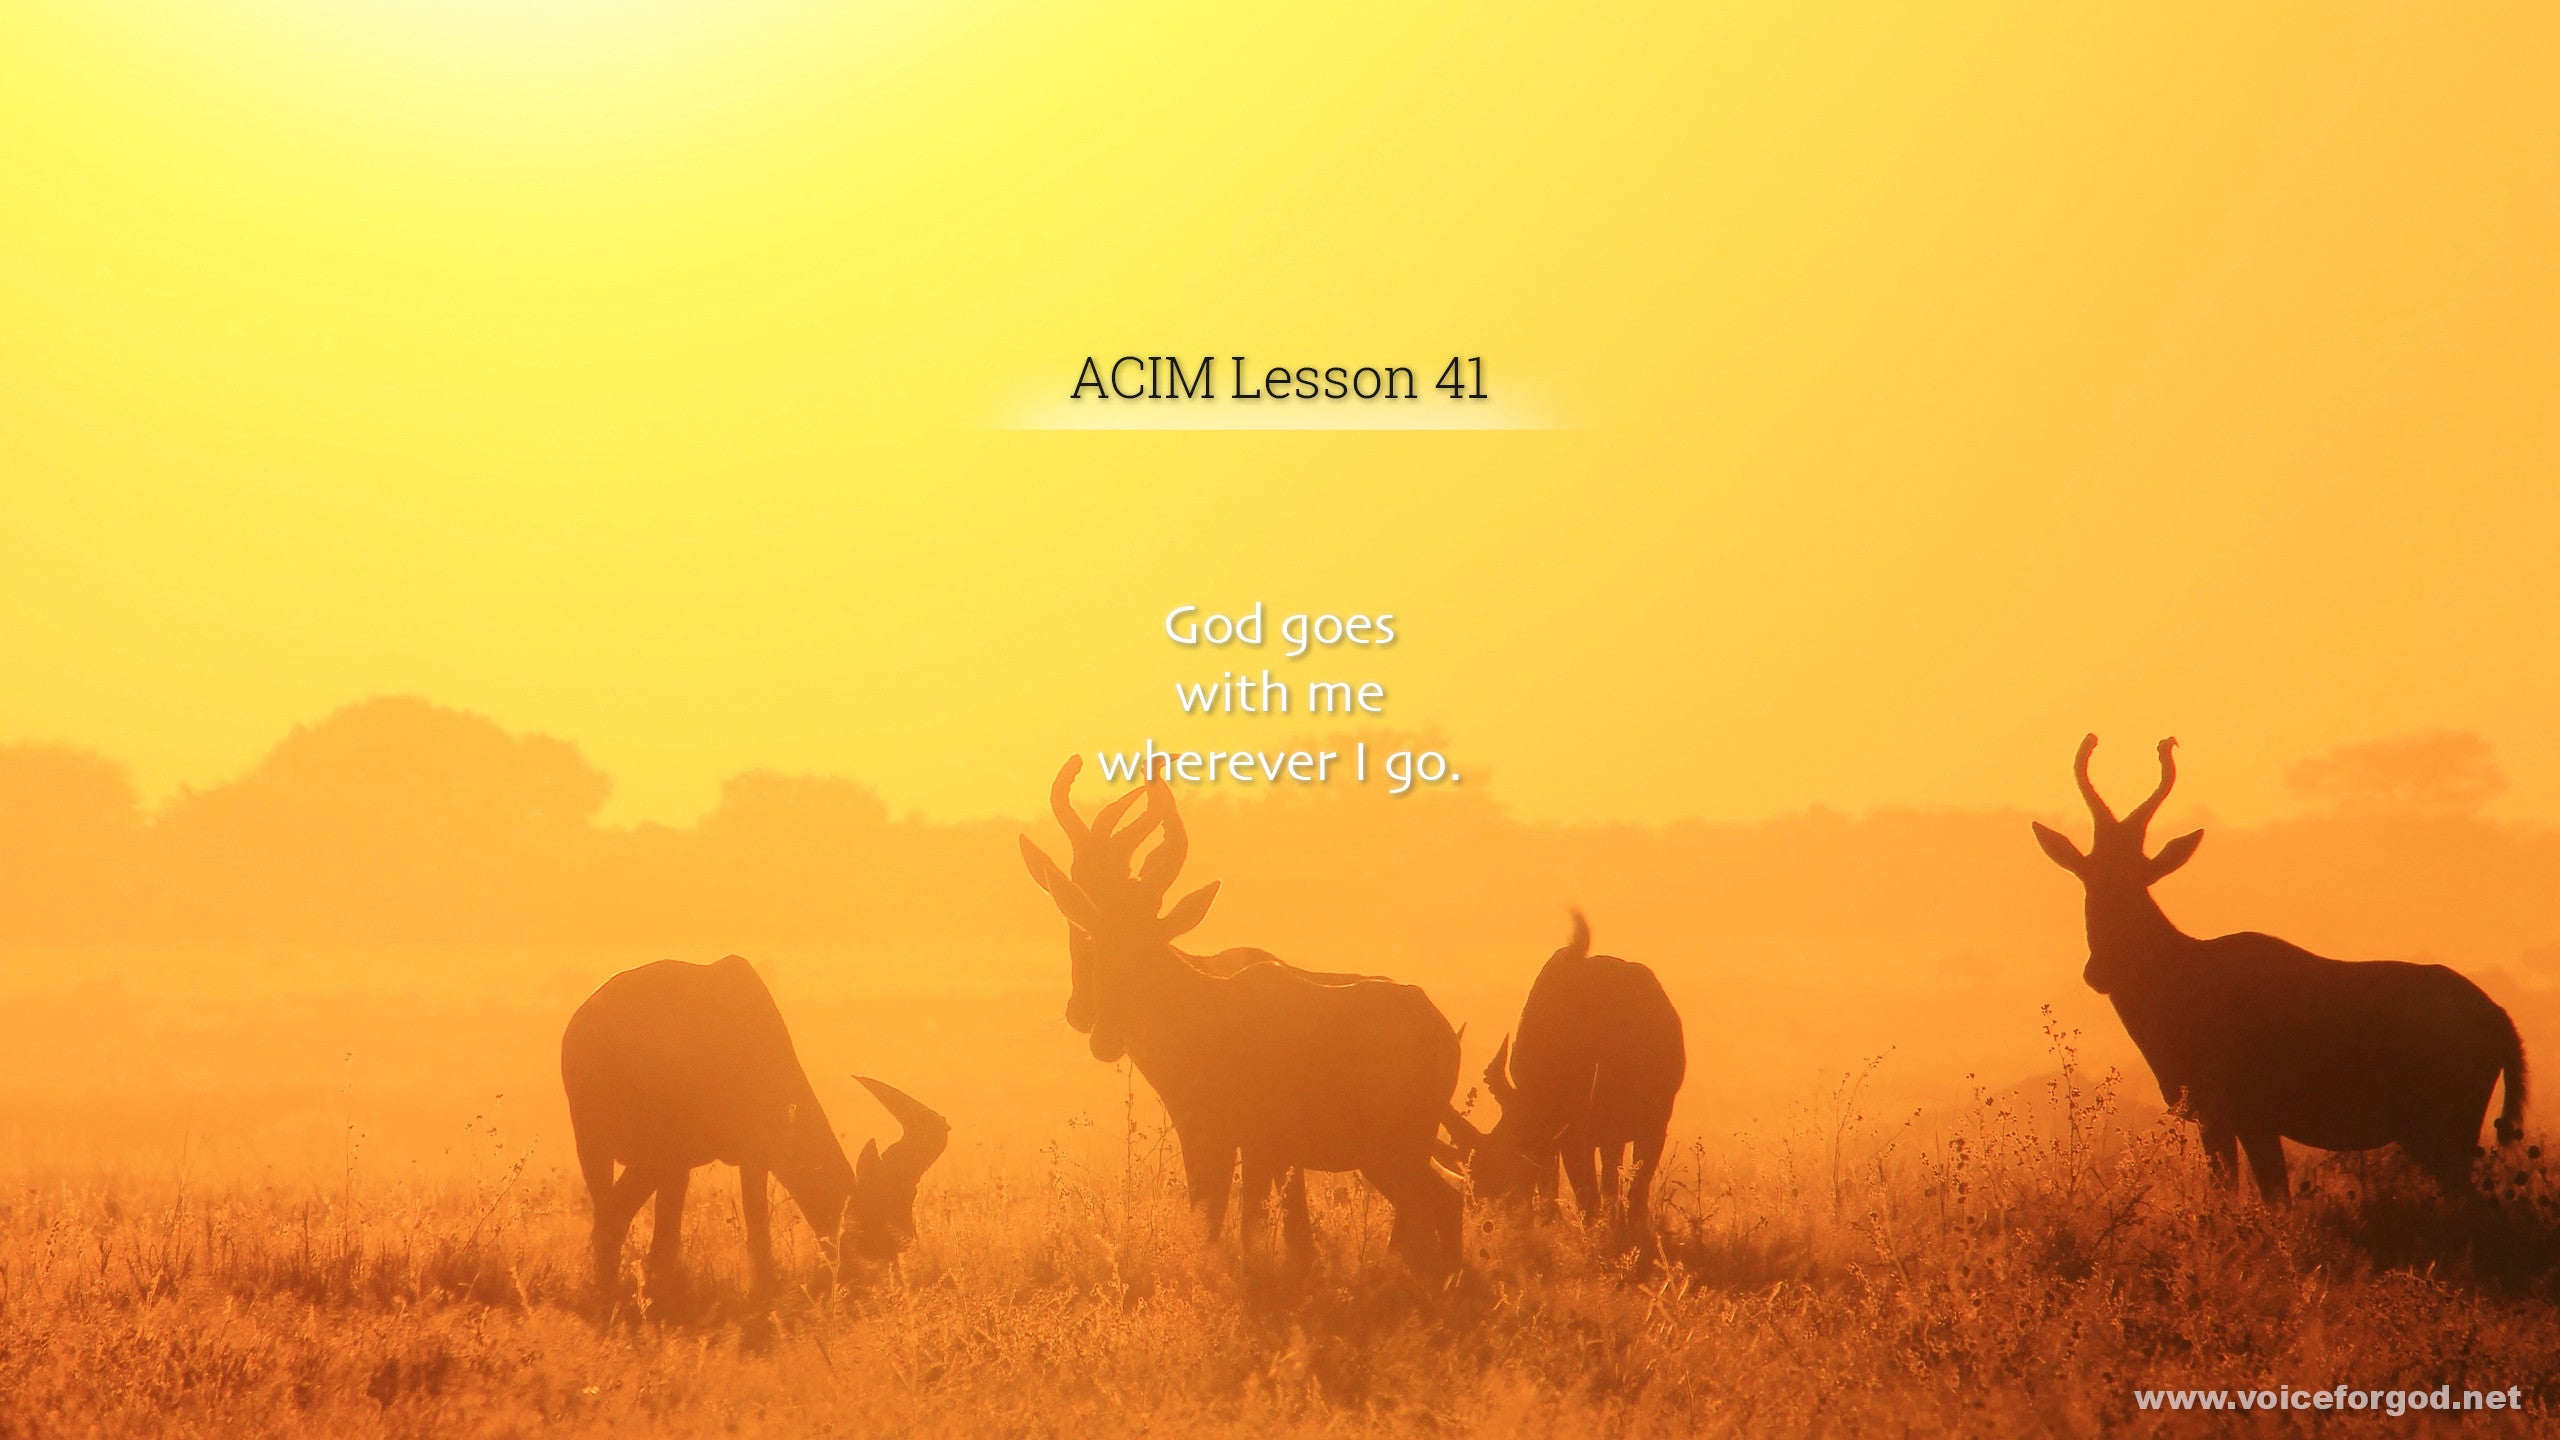 ACIM Lesson 41 - A Course in Miracles Workbook Lesson 41